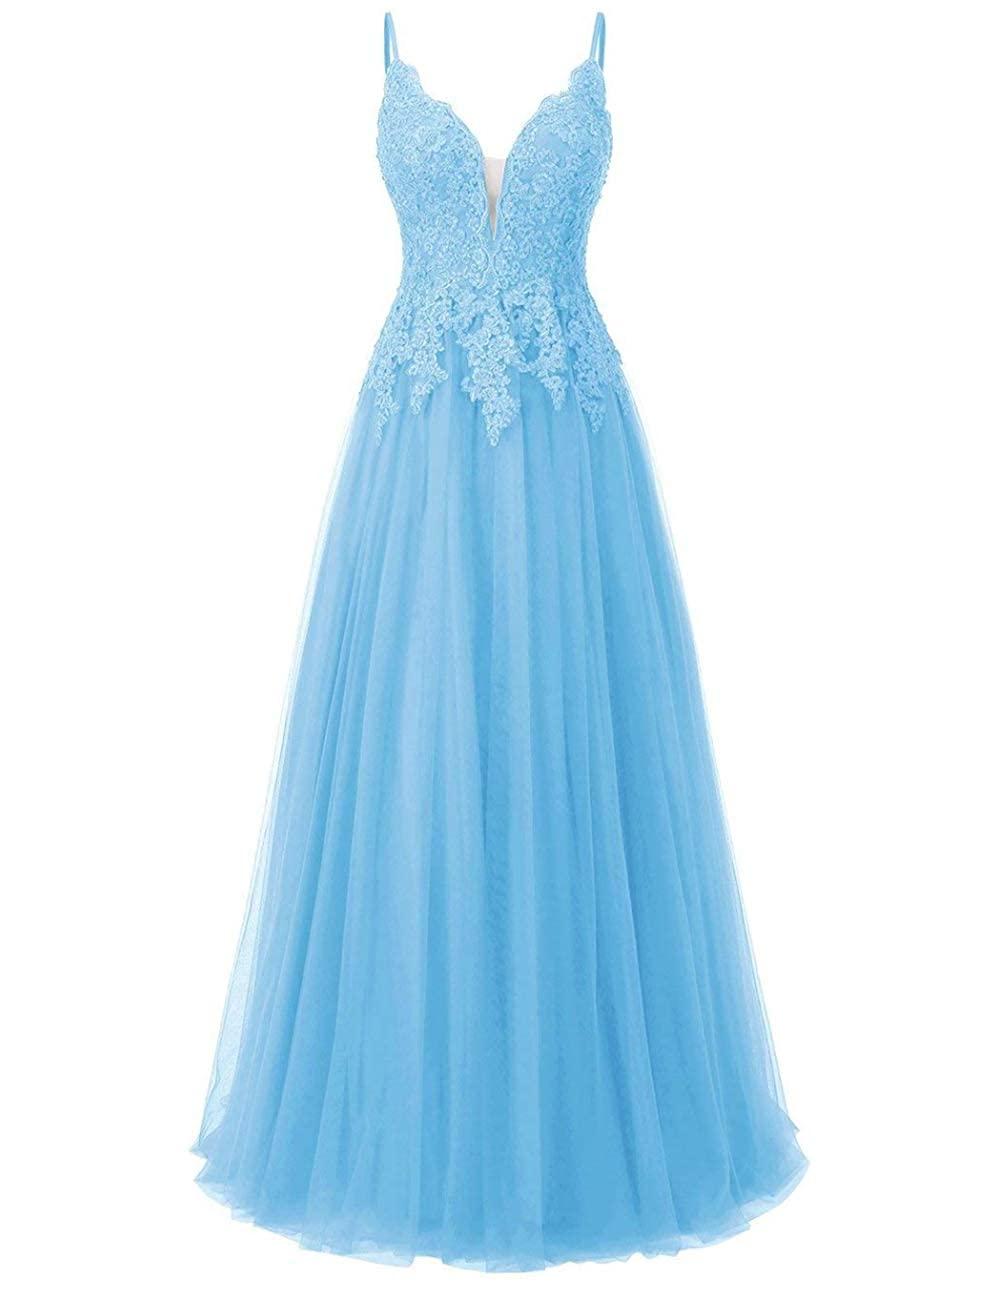 Sky bluee Elegant Long Bridesmaid Dresses with Lace Applique Beads Spaghetti Straps Tulle Prom Gowns